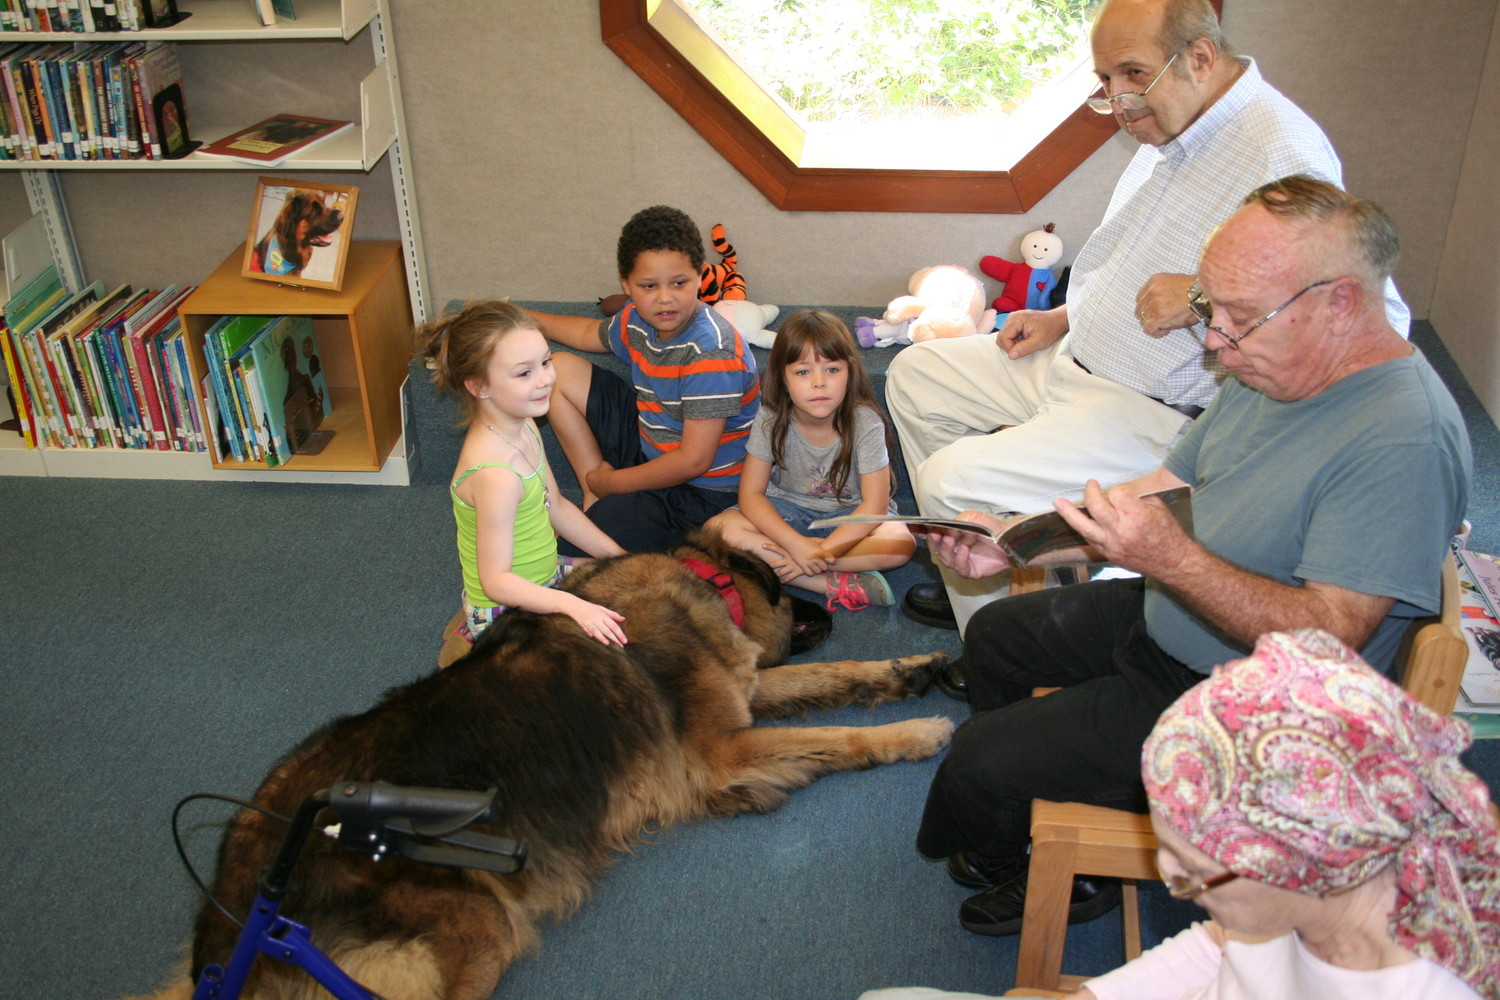 From left, Kelsi Baatz, 6, of Keystone Heights, Jordan Johntry, 7, Crista Johntry, 5, both of Melrose, snuggle with Clyde the Wonder Dog on Oct. 14 during Paws to Read at the Melrose Public Library. Also from left are Bill Morse, Library volunteer Mike Mason and Kathy Morse.